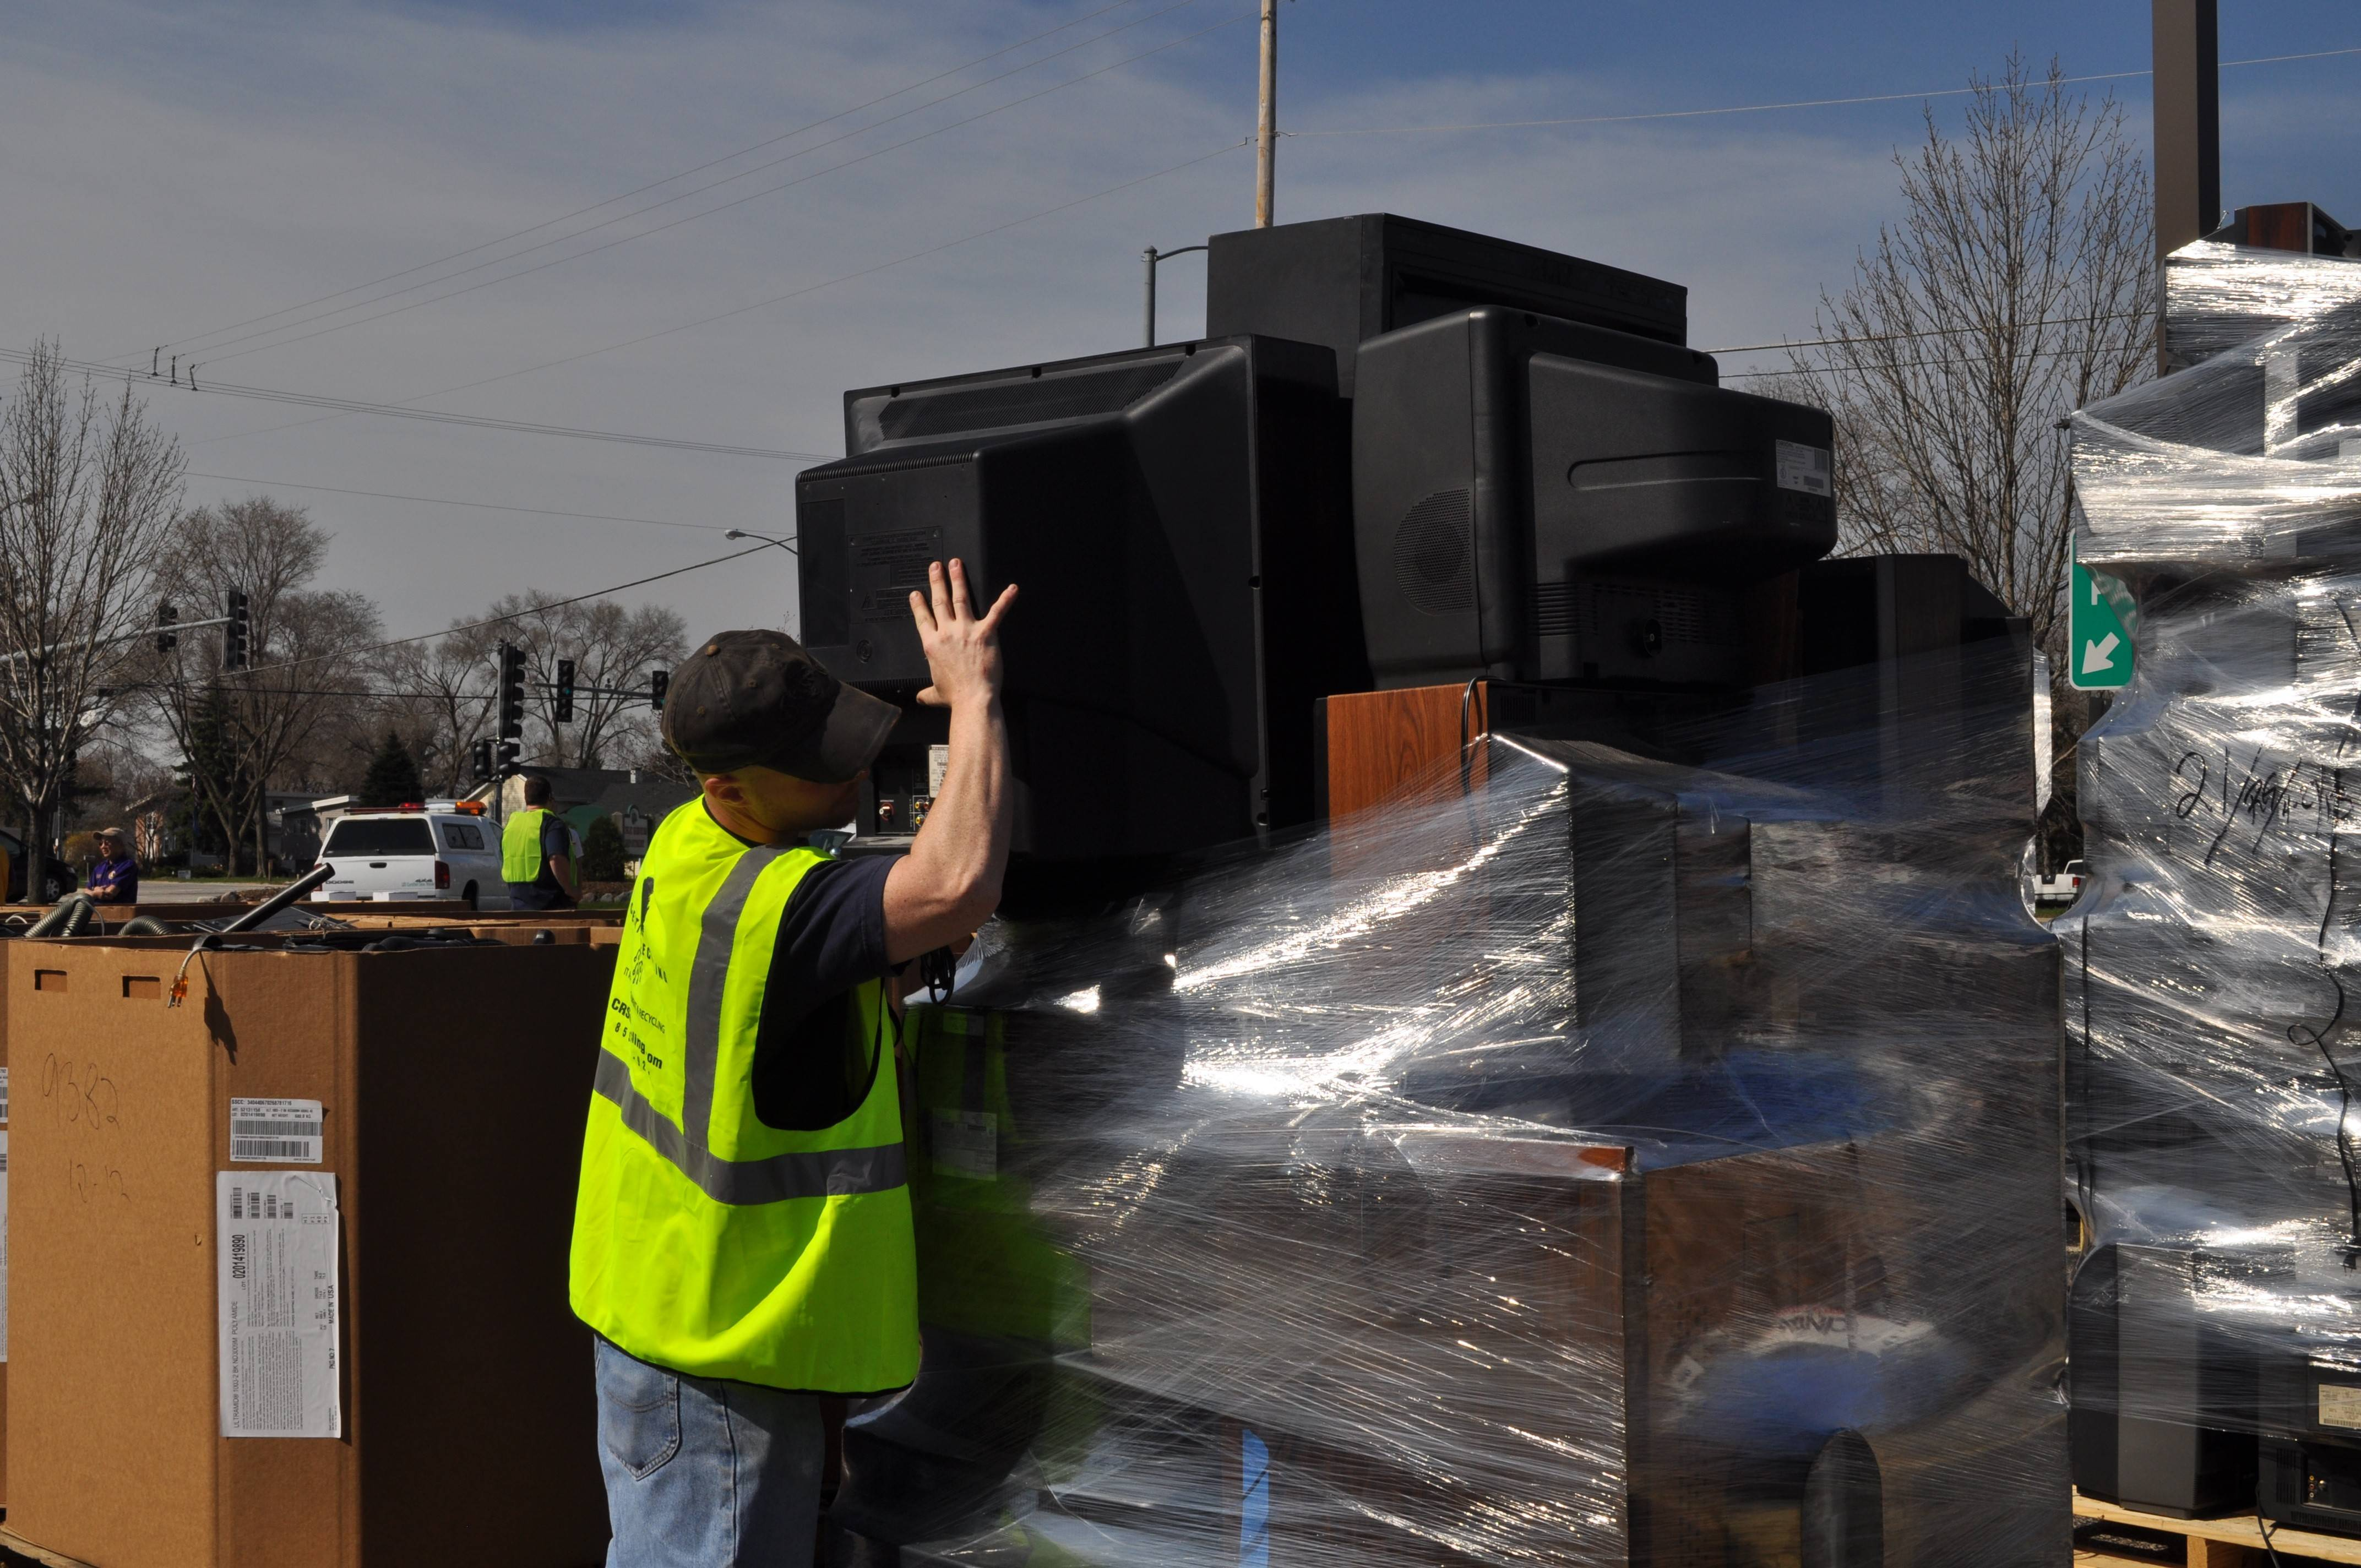 Glendale Heights offers a One-Stop Reuse and Recycle event on April 26. Residents can drop off electronics, batteries and more.